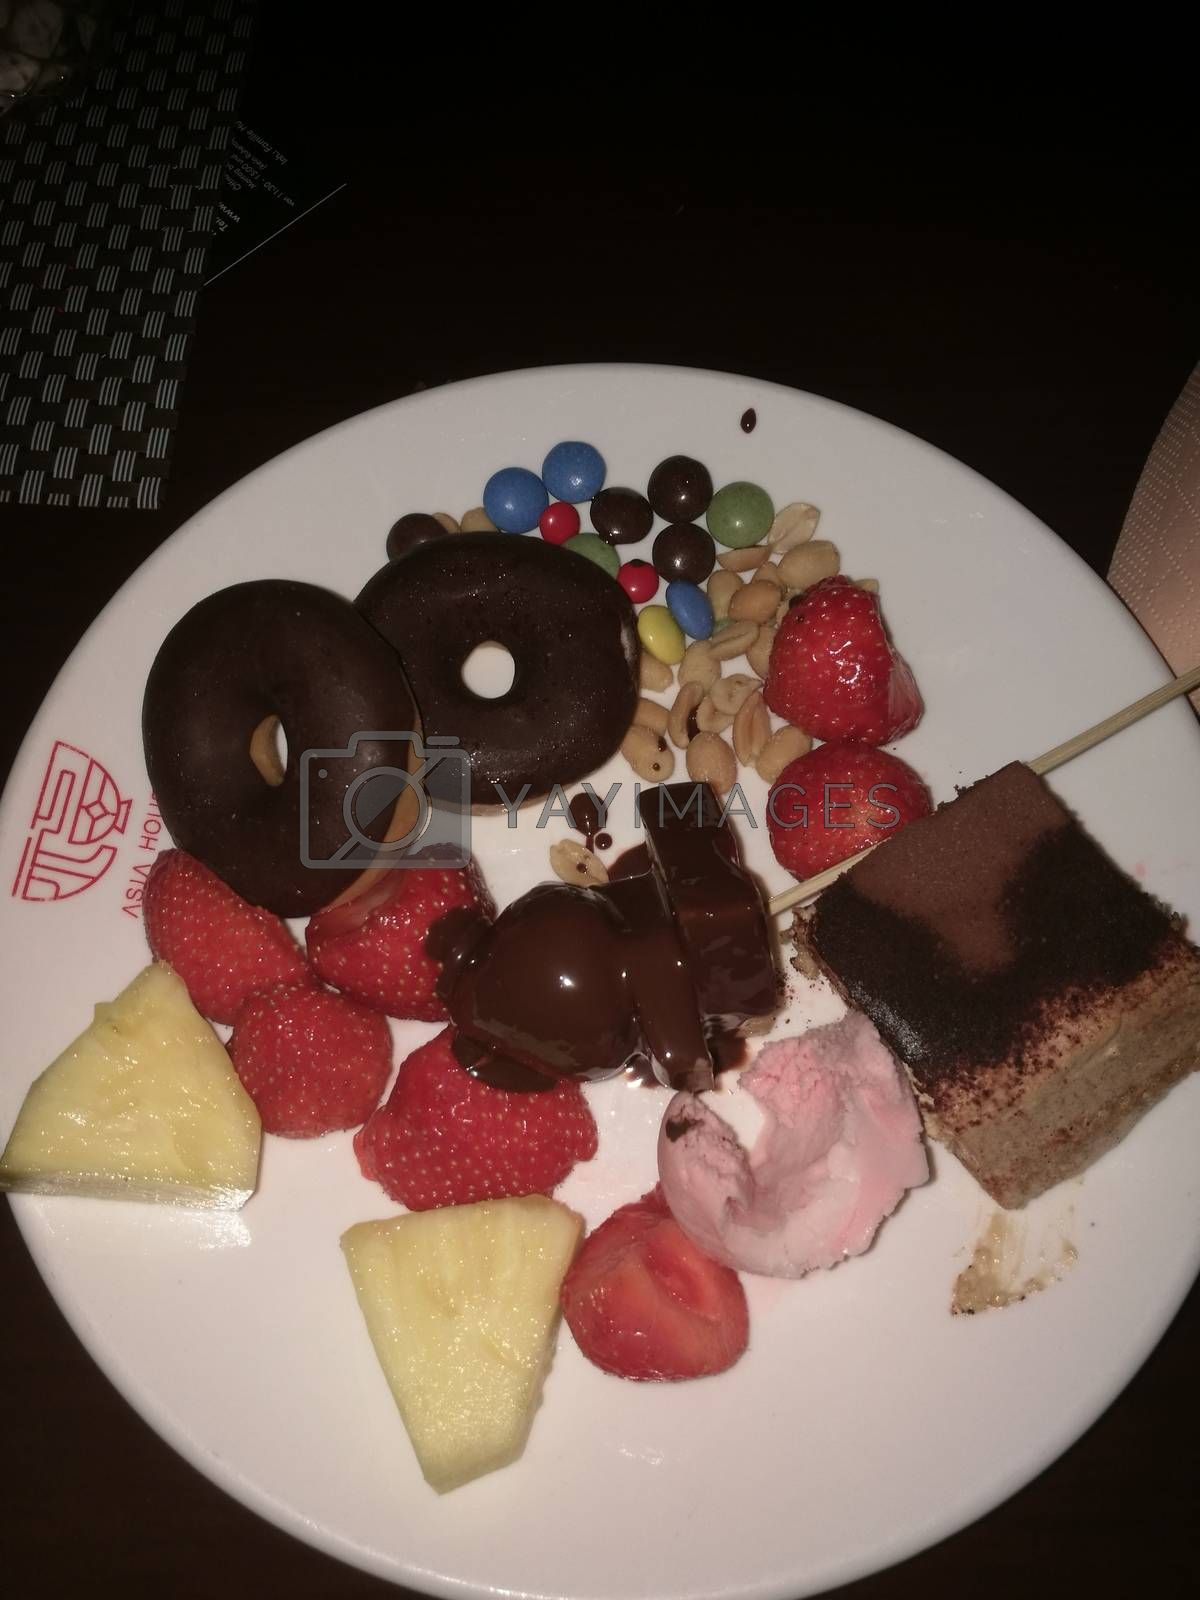 Royalty free image of A piece of chocolate cake and fruits on a plate by balage941